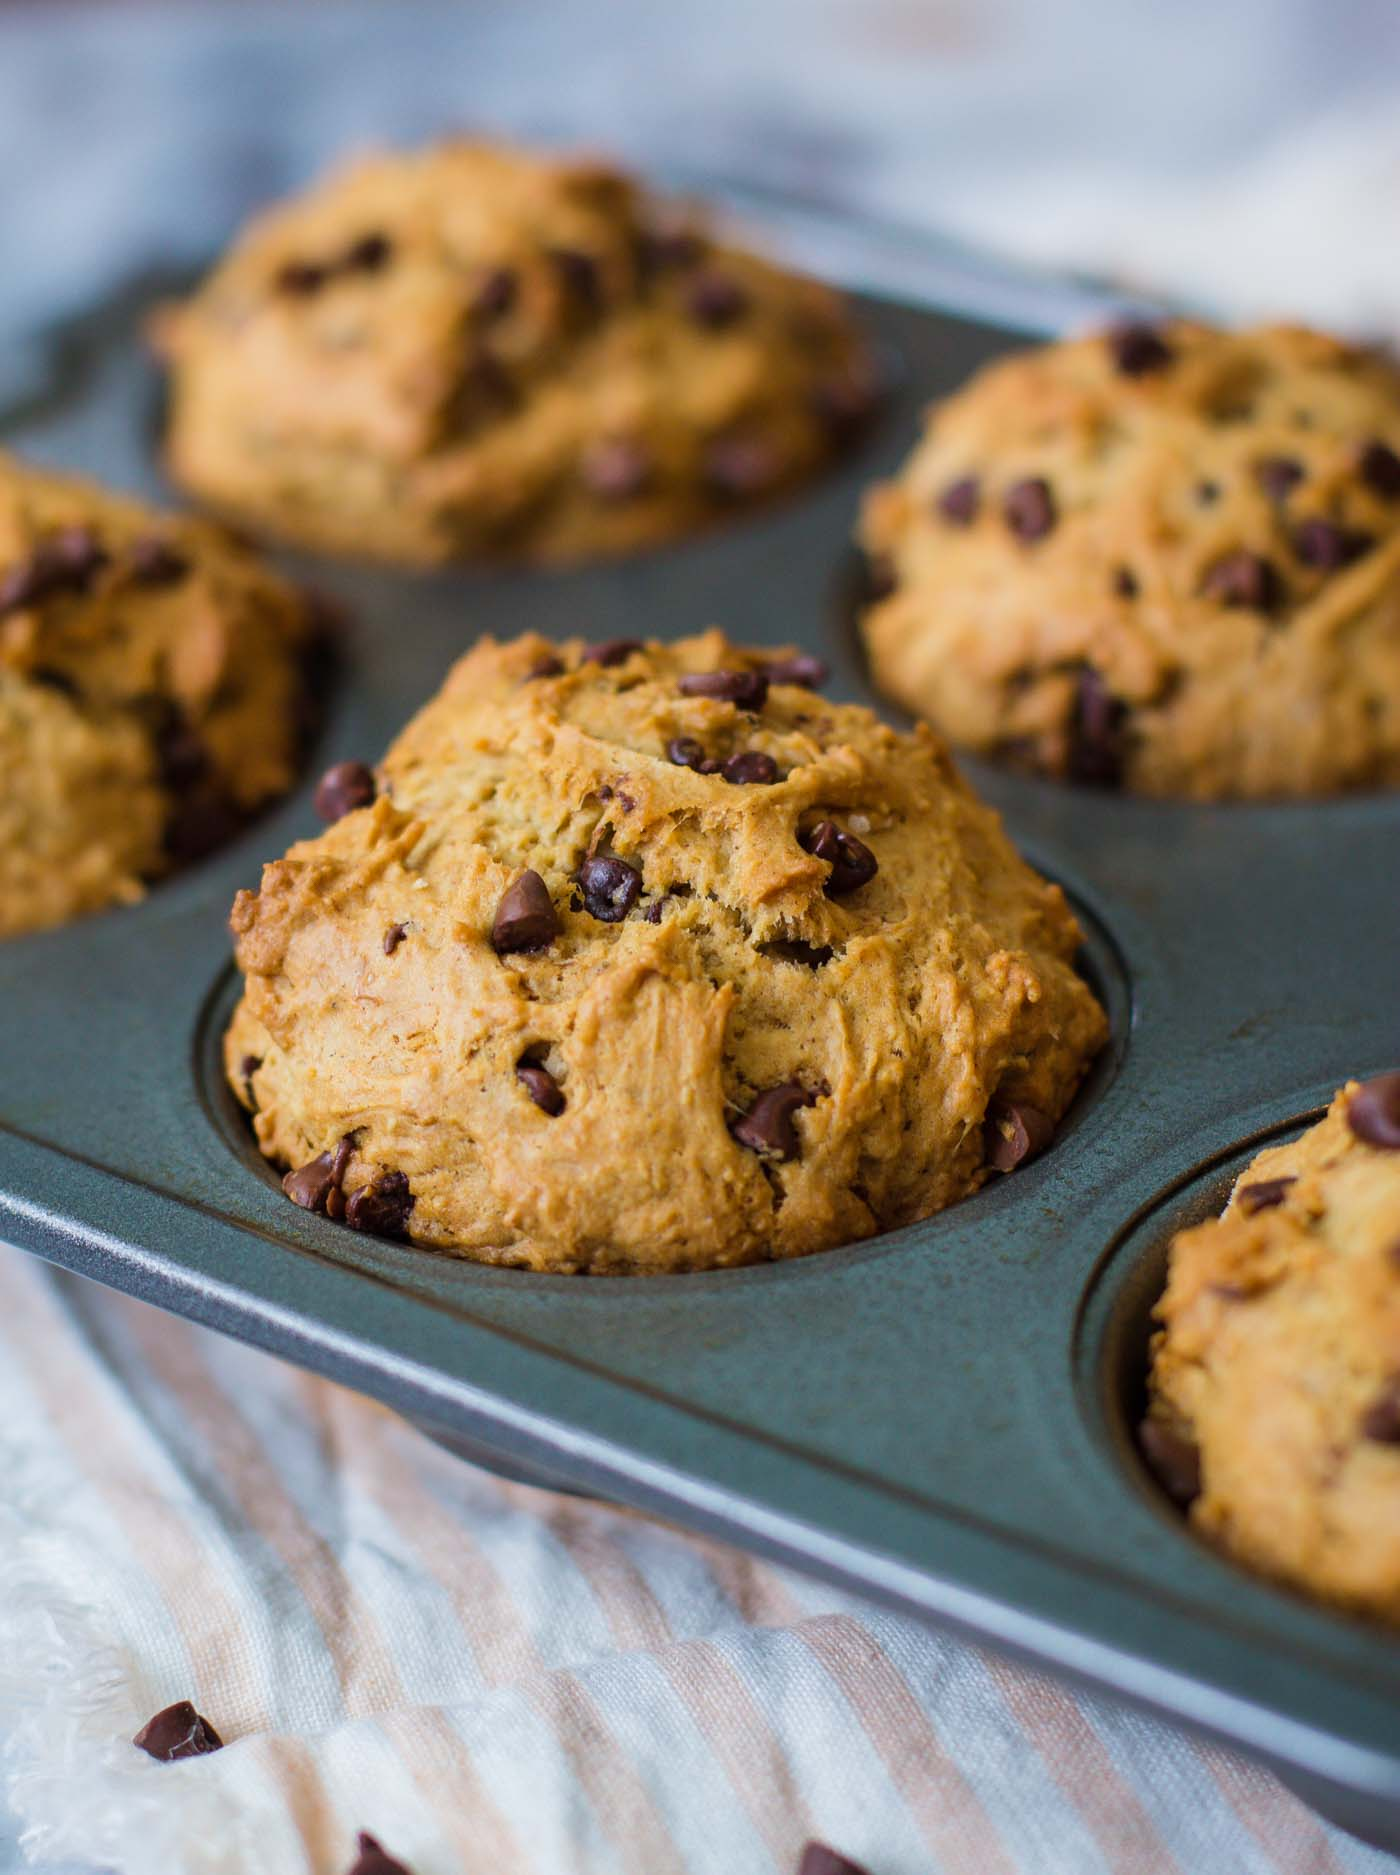 Chocolate chip muffins recipe for 6